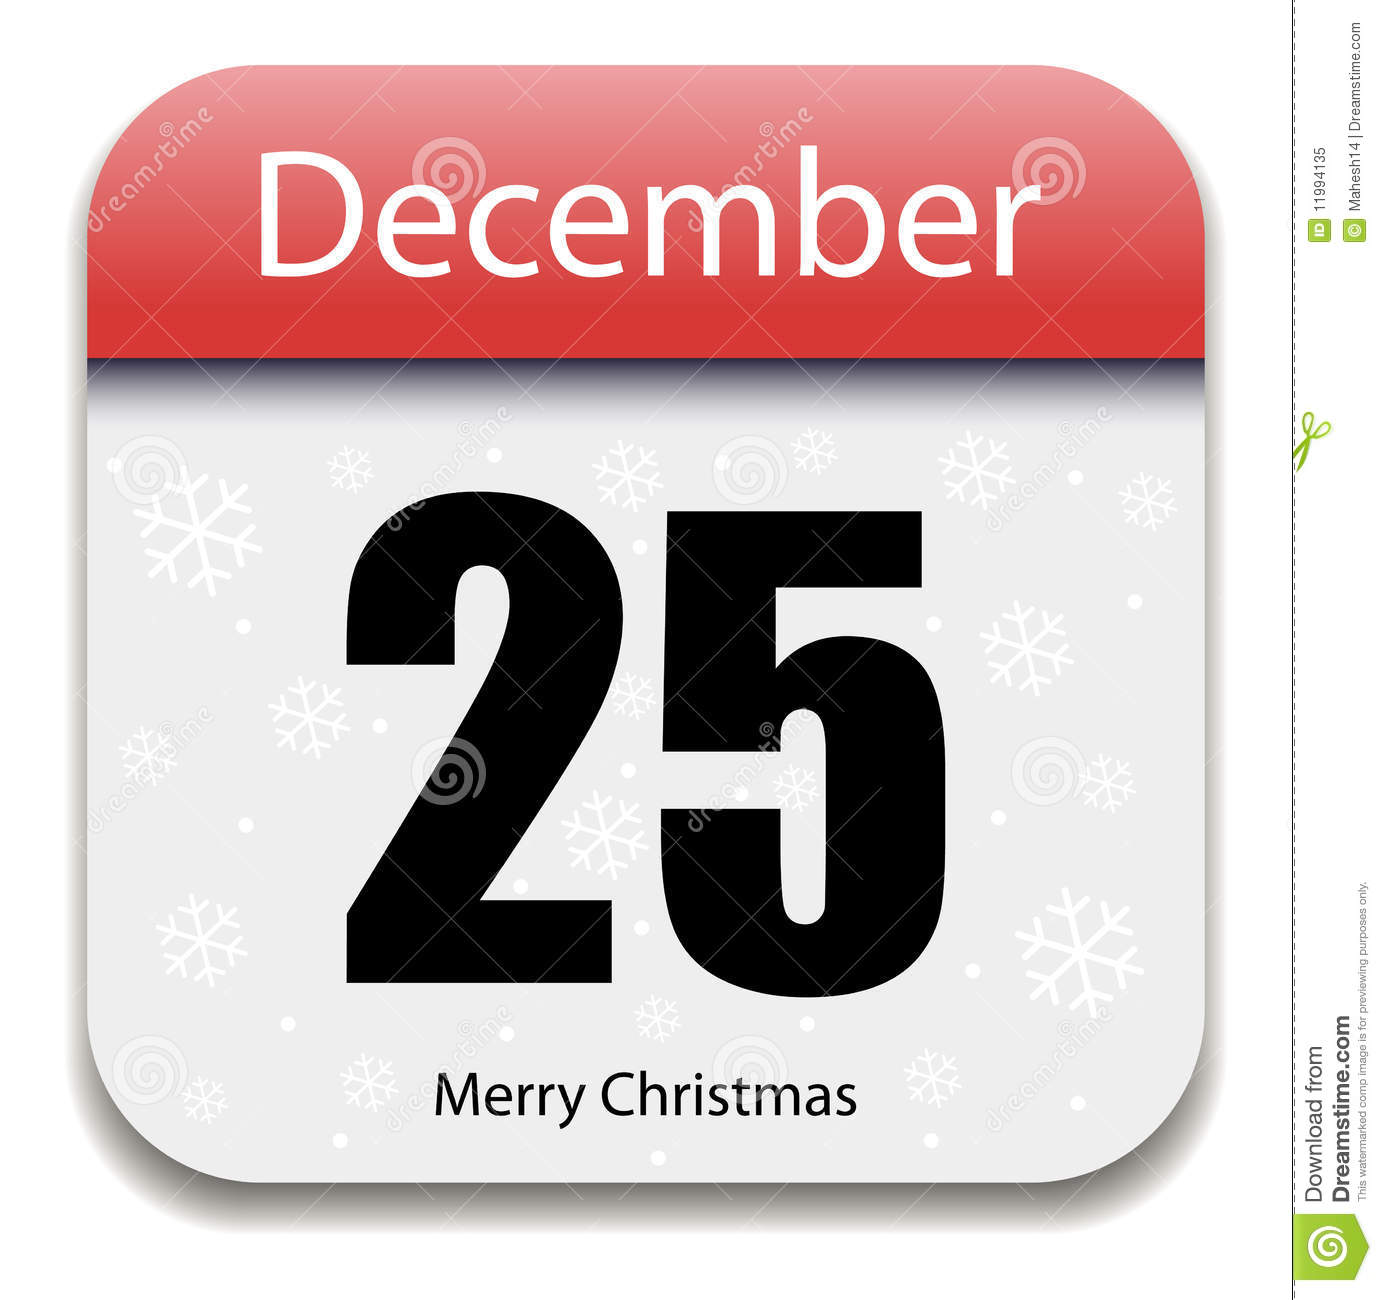 christmas calendar date royalty free stock photo image clip art merry christmas happy new year clip art merry christmas images